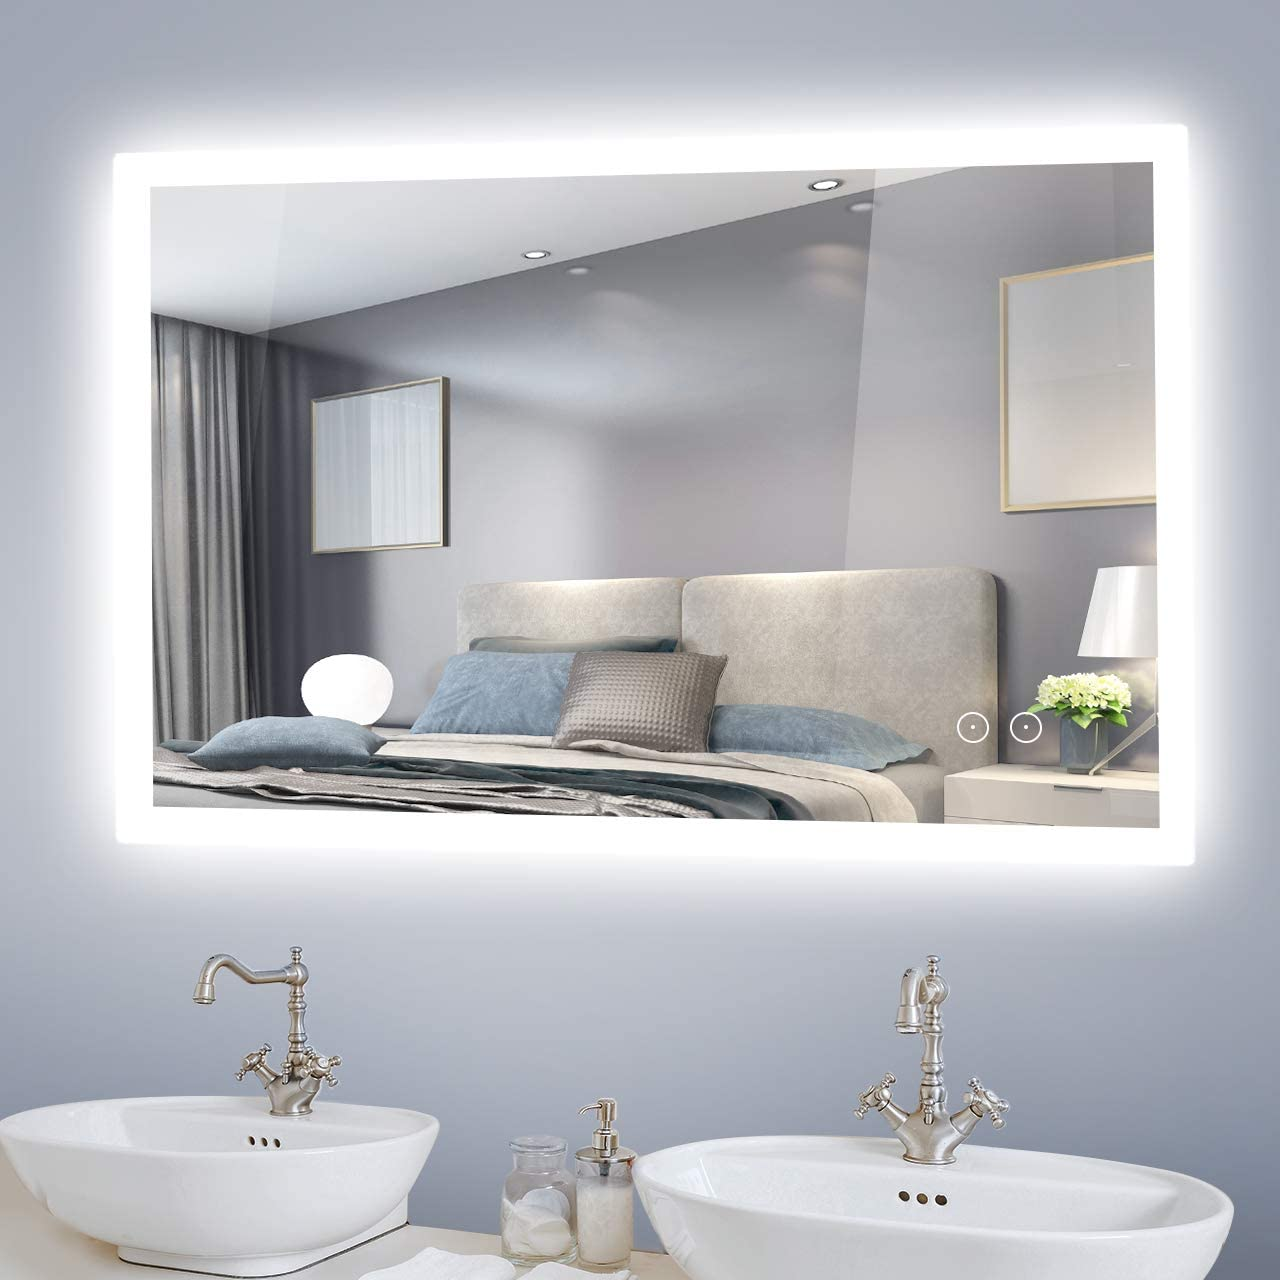 SLANG 36X28 inch LED 2021 spring and Challenge the lowest price of Japan summer new Mirrors for Mirror Bathroom Mounted An Wall